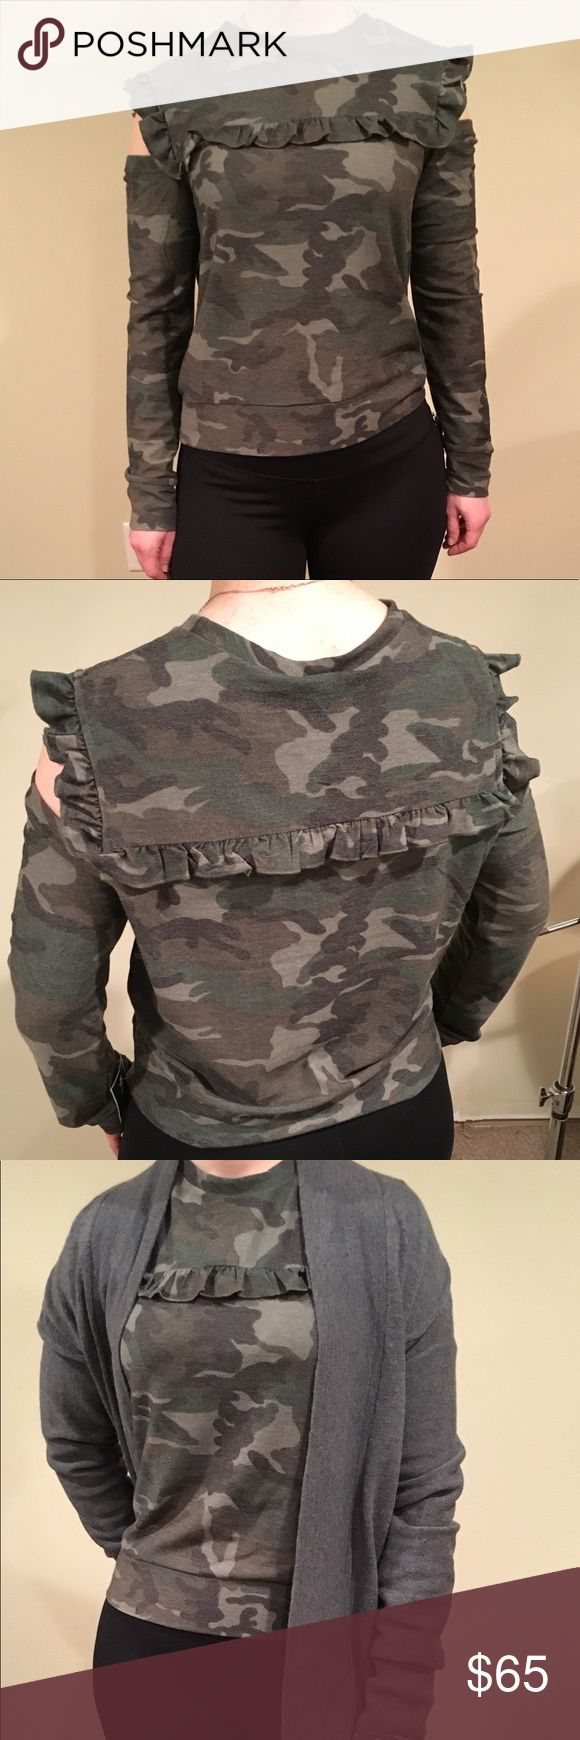 DREW olive / camo top w/ shoulder cutouts sz Med Cute long sleeve camo top by DREW with shoulder cutouts. Small ruffles across chest, shoulders, and and back. Kind of reminds me of a thin cozy fall sweater. Fits well under a thick cardigan. 🌼my measurements🌼 bust: 32B waist: 30 DREW Tops Blouses